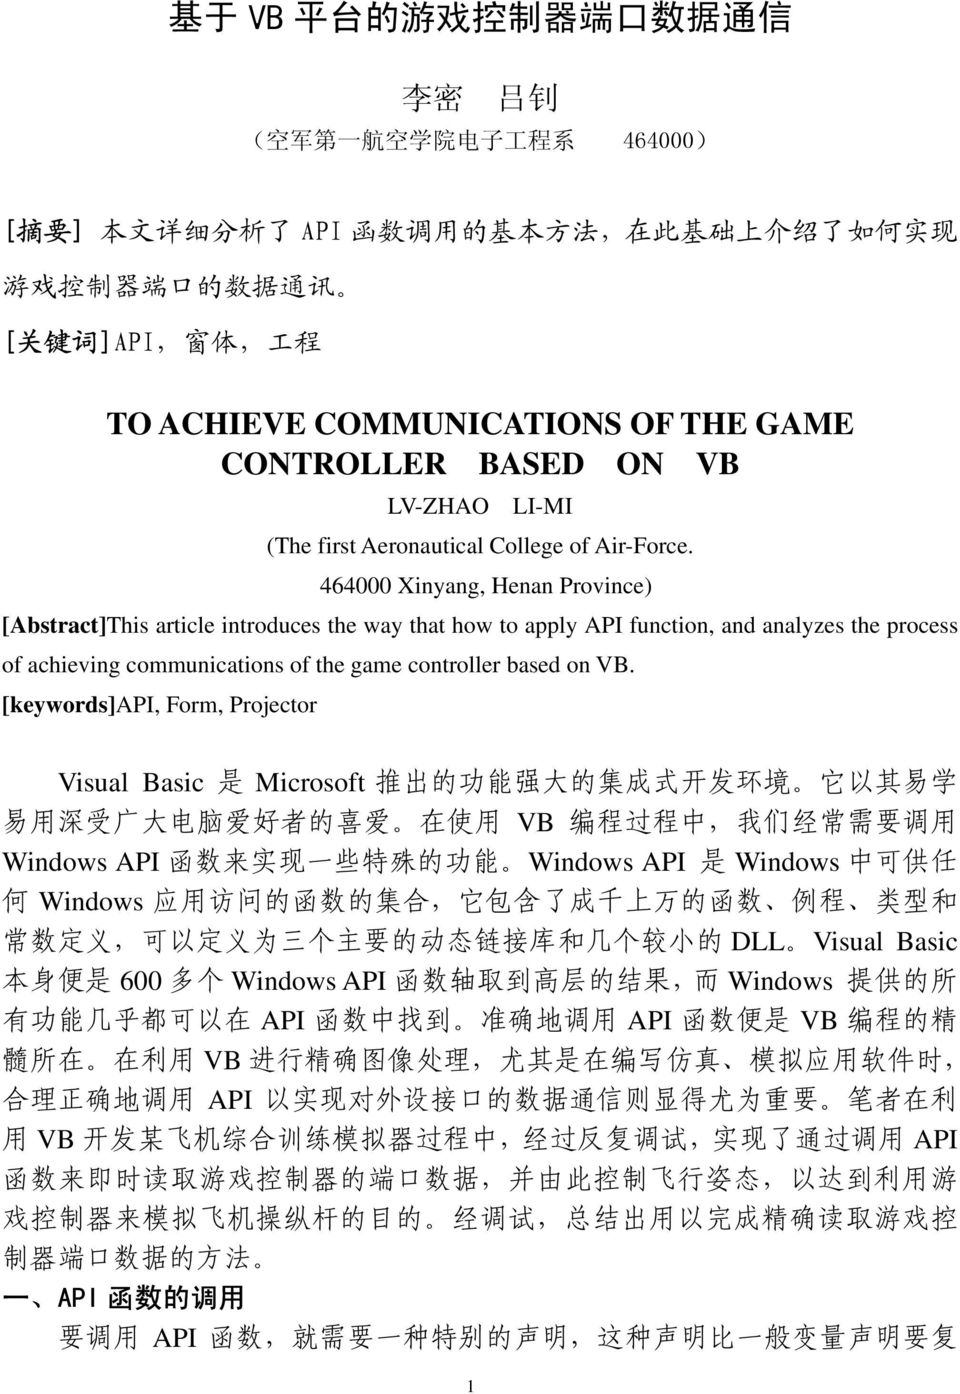 464000 Xinyang, Henan Province) [Abstract]This article introduces the way that how to apply API function, and analyzes the process of achieving communications of the game controller based on VB.